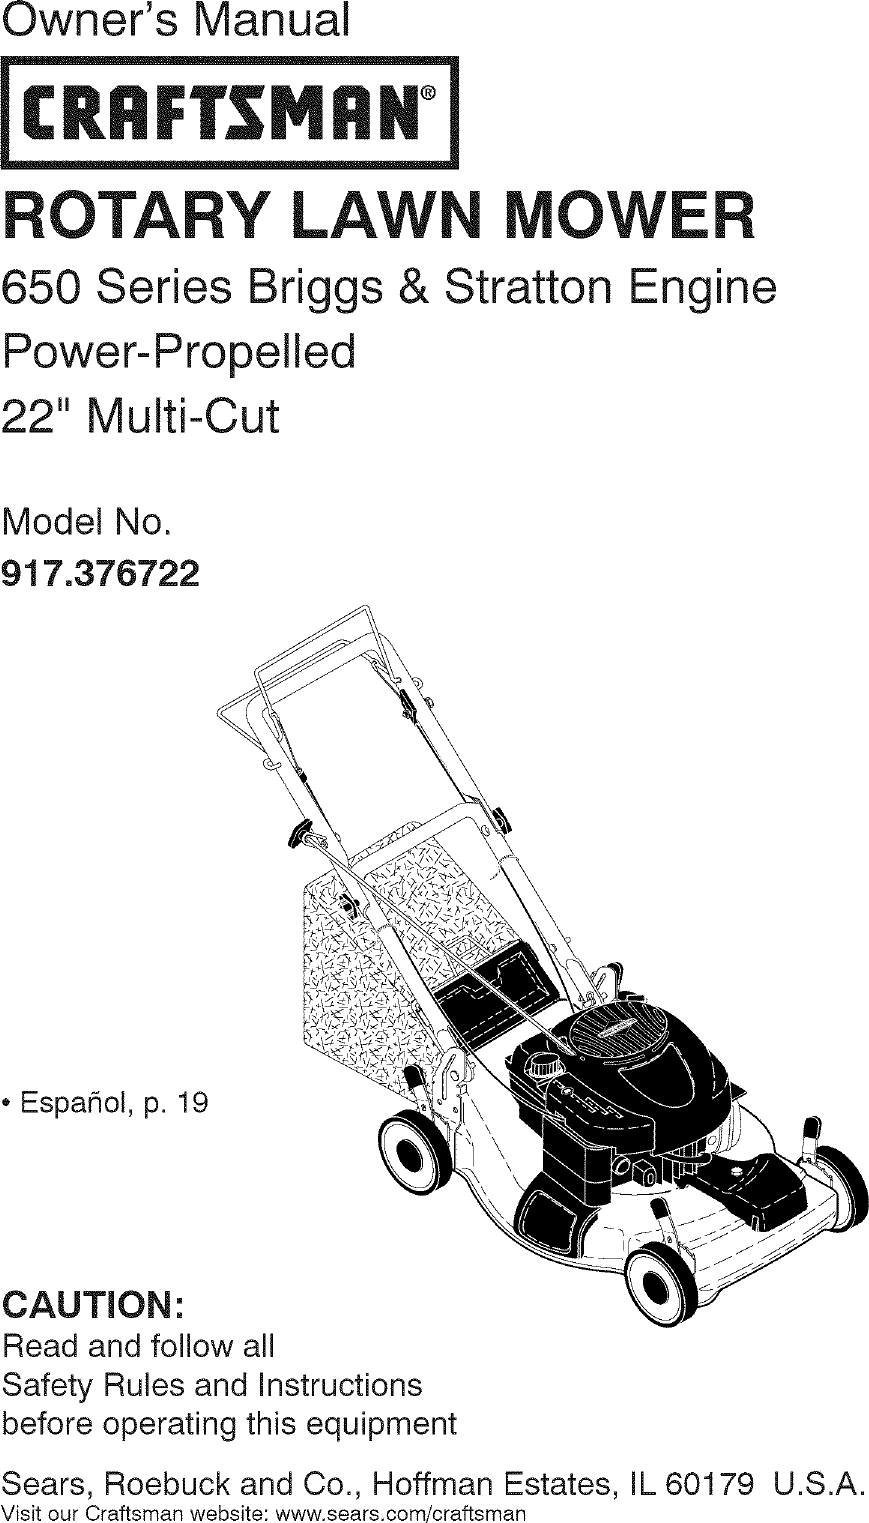 Craftsman 917376722 User Manual LAWN MOWER Manuals And